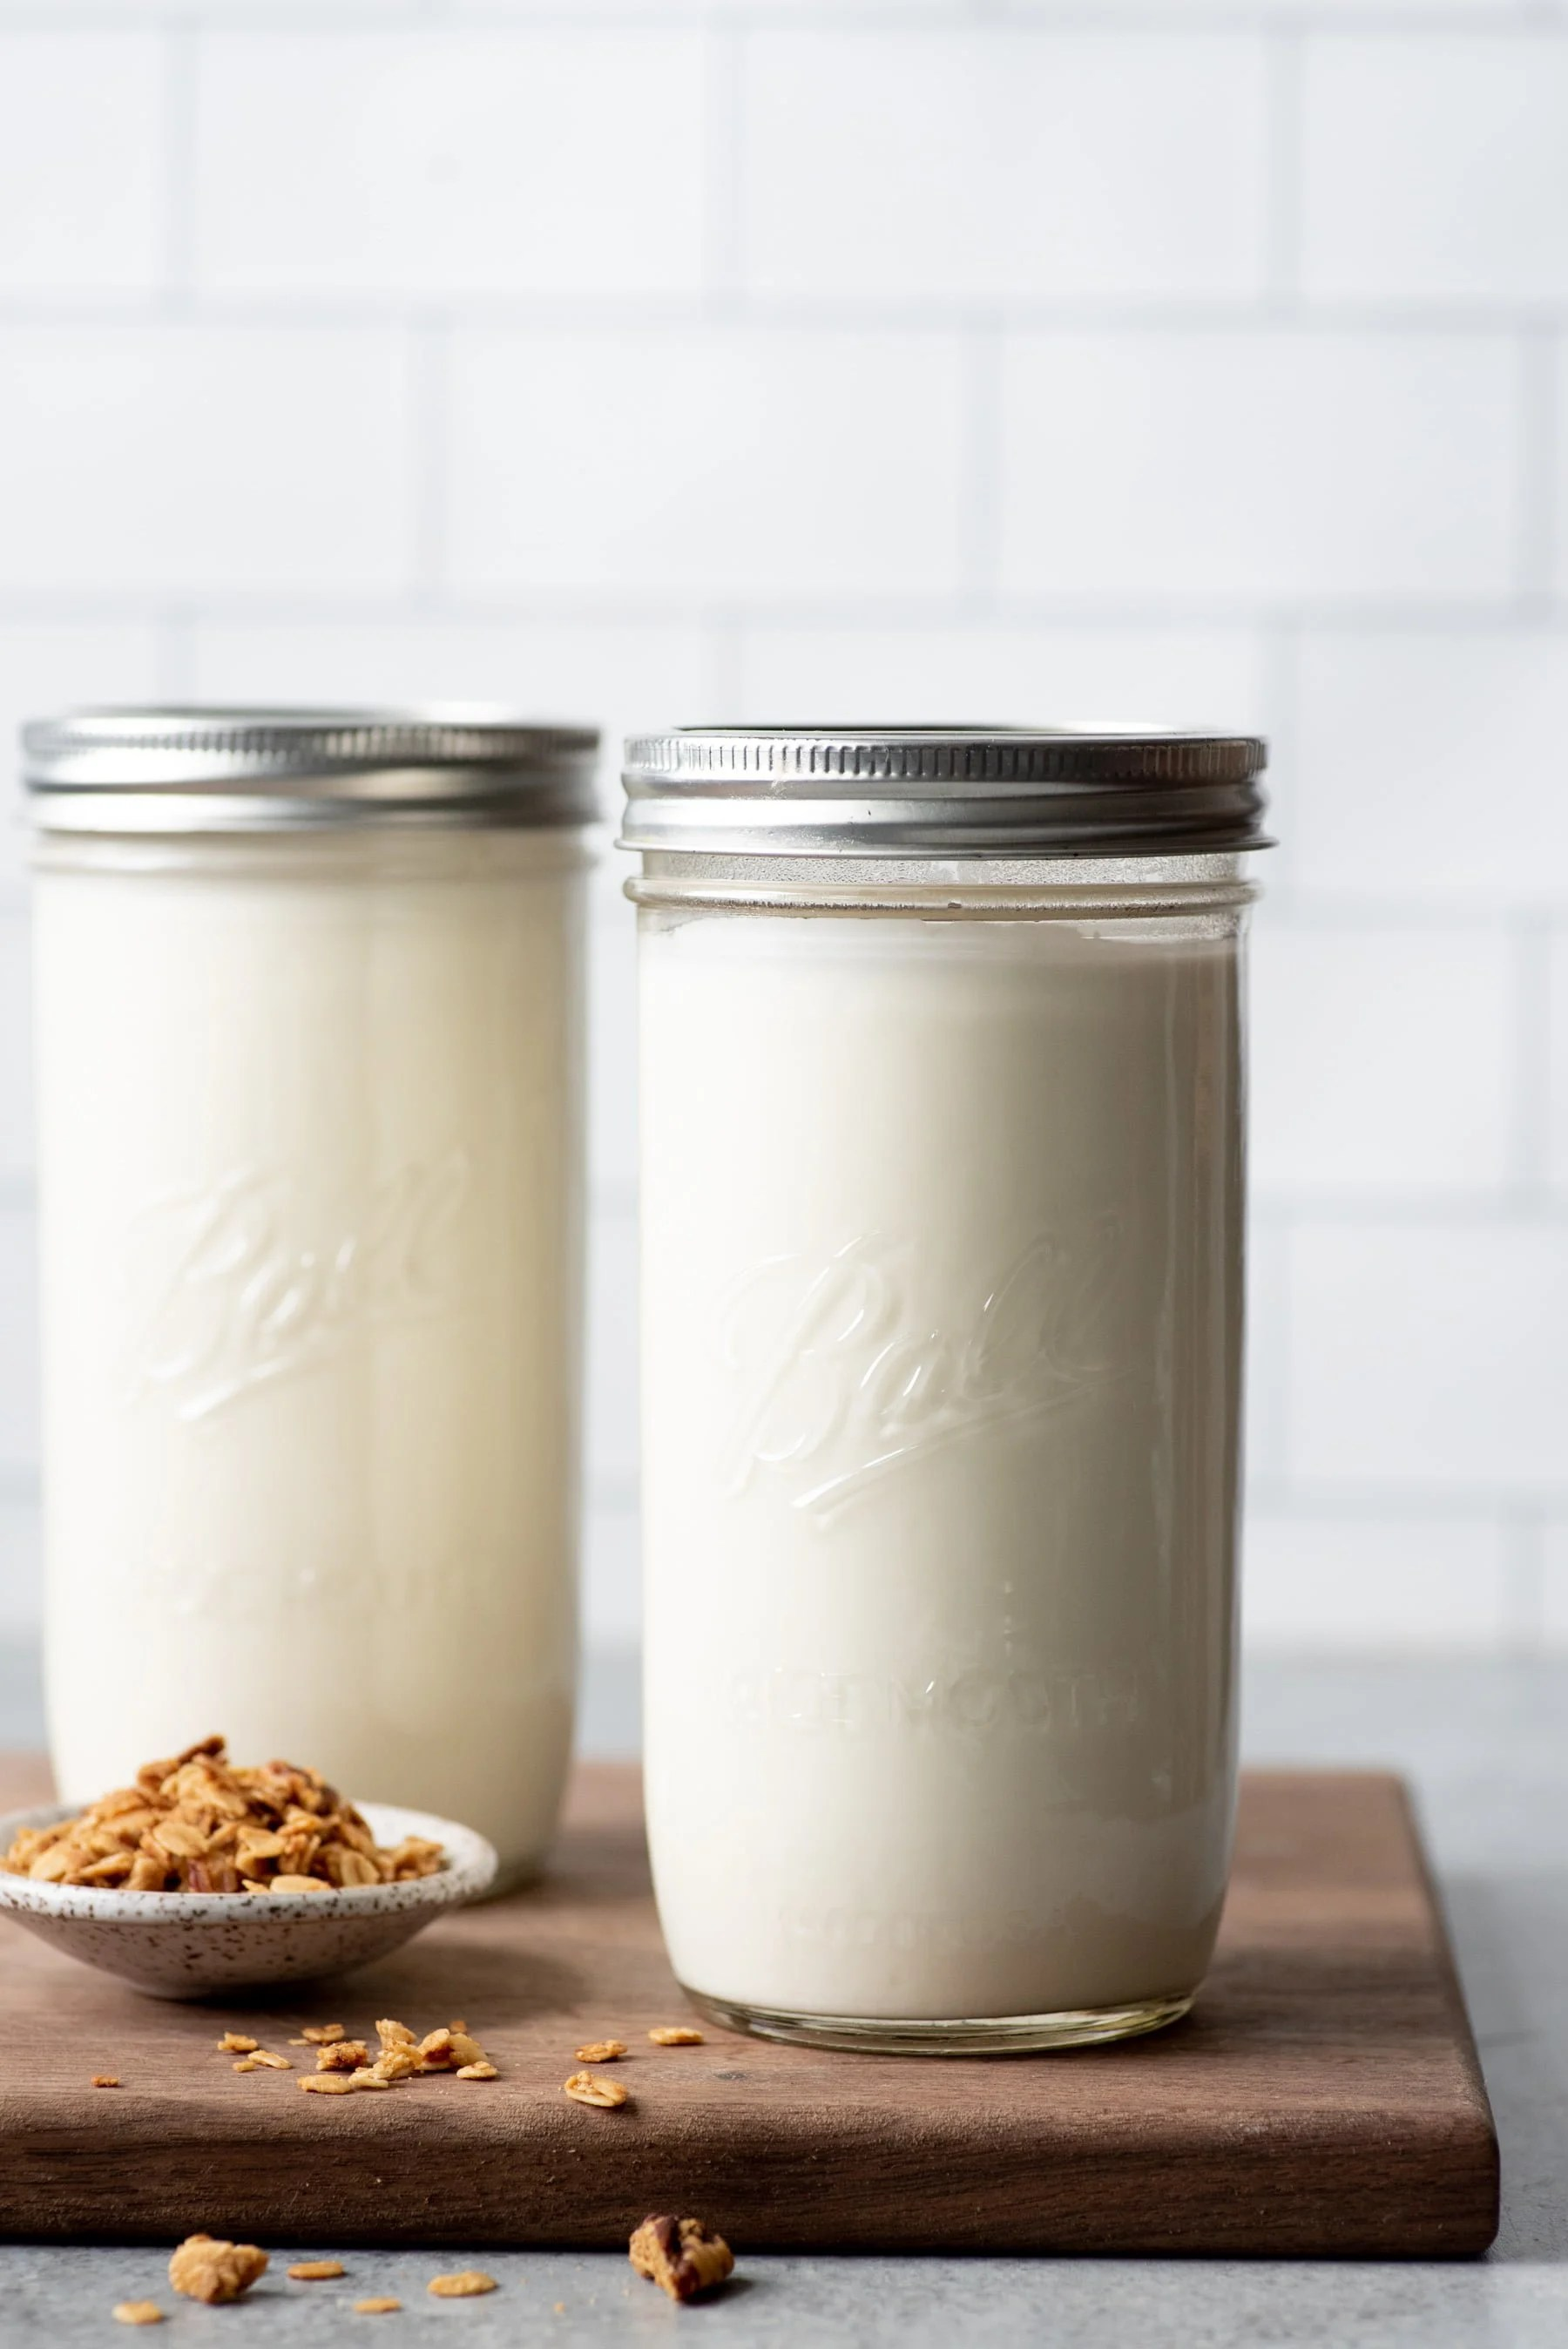 Homemade 24-hour yogurt in two glass jars